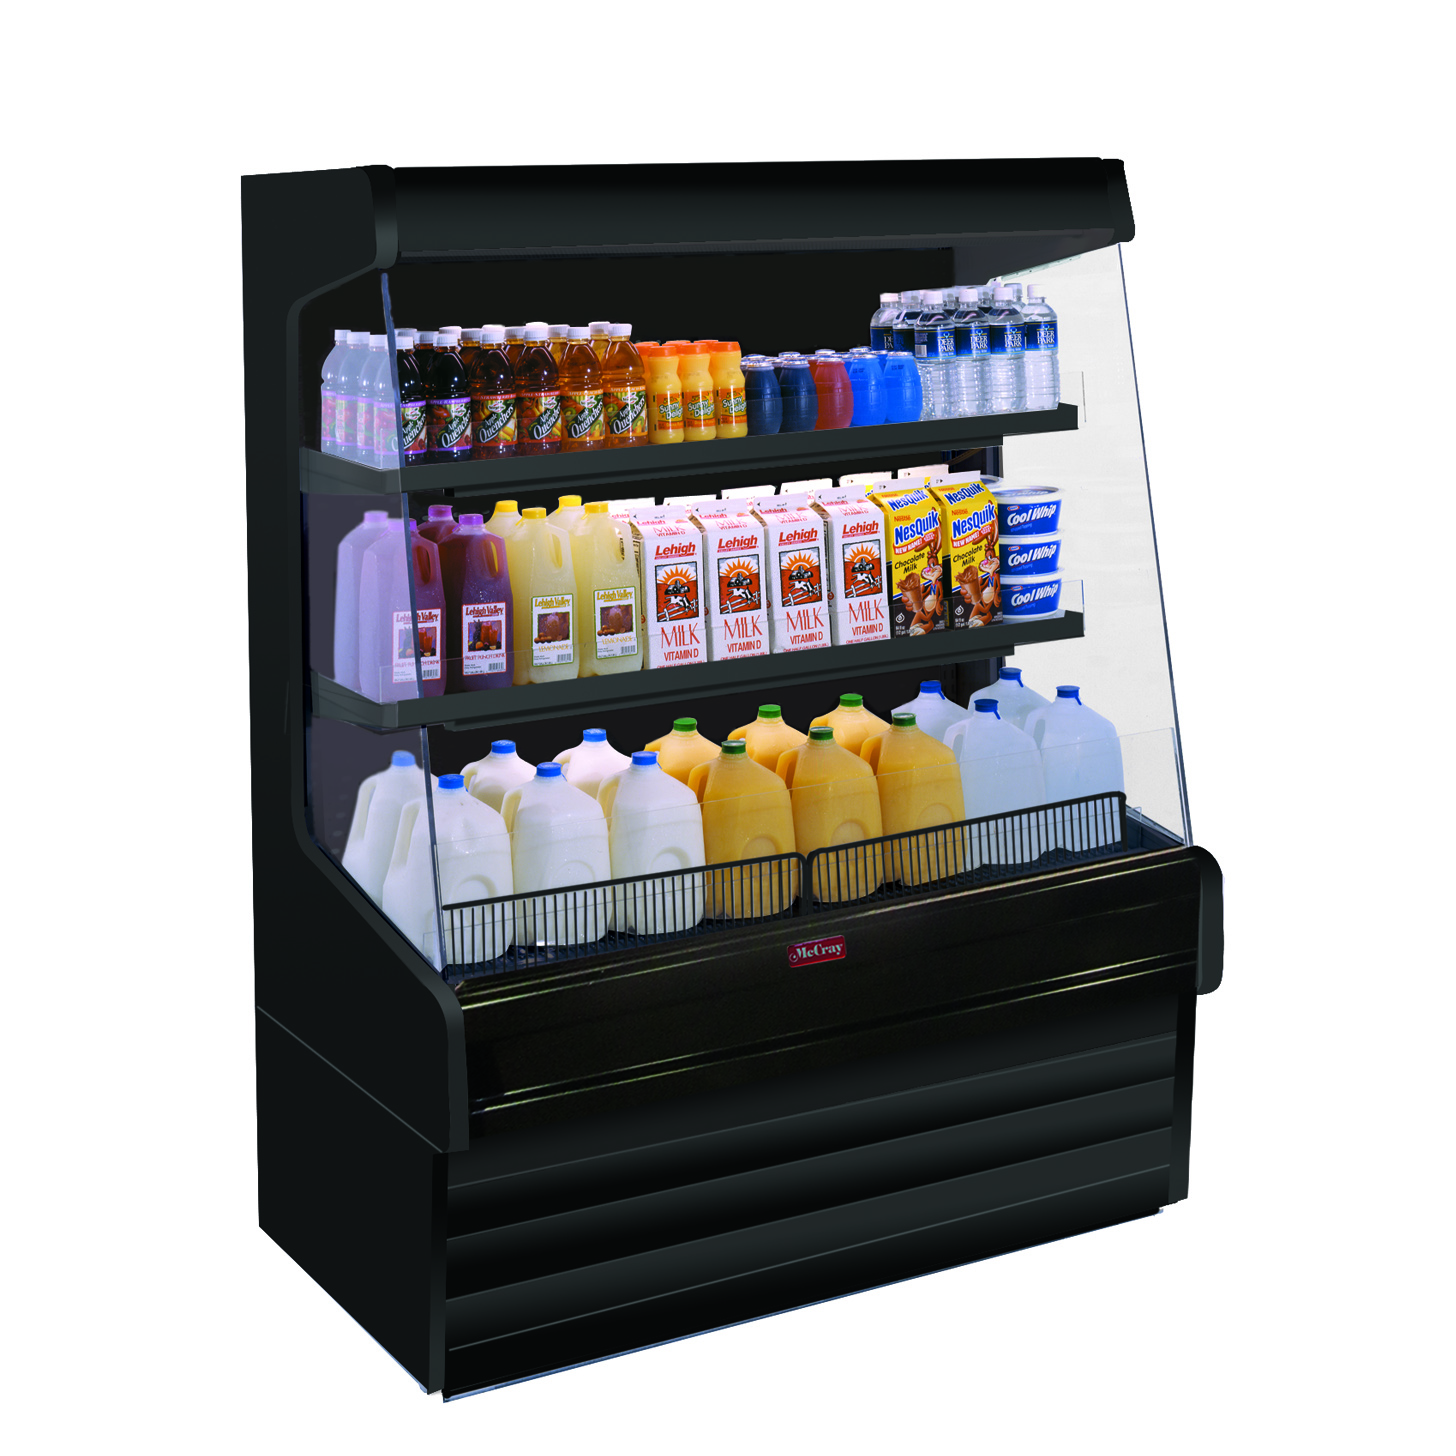 Howard-McCray R-OD30E-3L-B-LED merchandiser, open refrigerated display